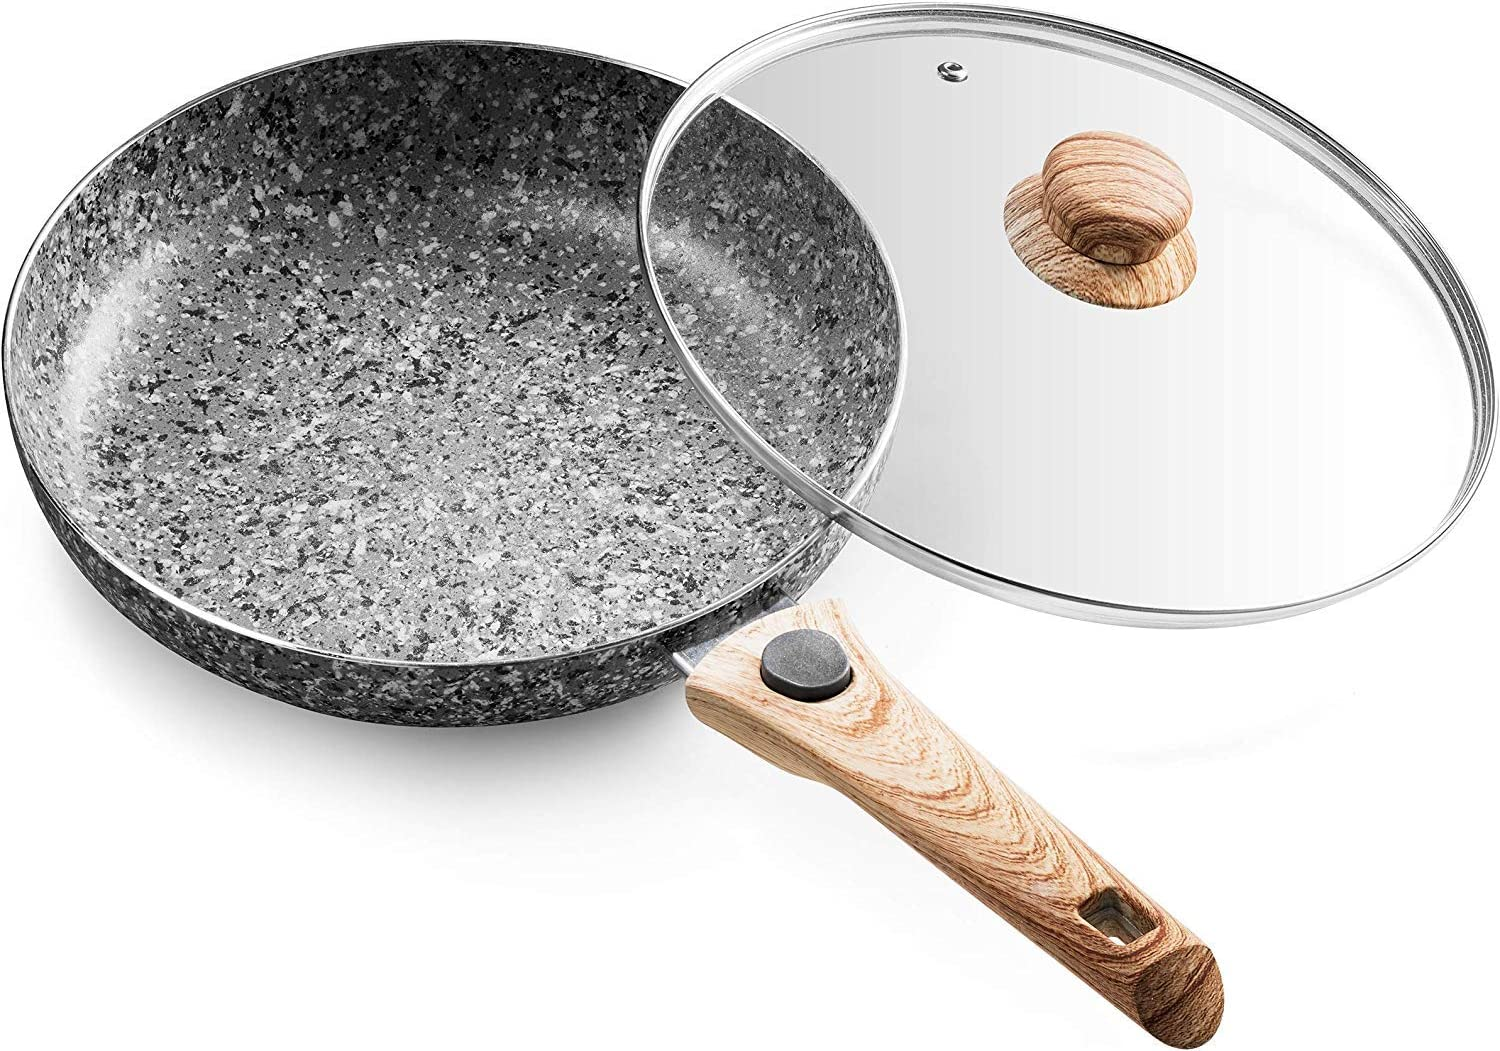 Mitbak 10-Inch Non-Stick Frying Pan with Lid   Granite Coating Nonstick Skillet Pan with Removable Heat-Resistant Handle   Premium Cooking & Kitchen Utensil   Induction Compatible